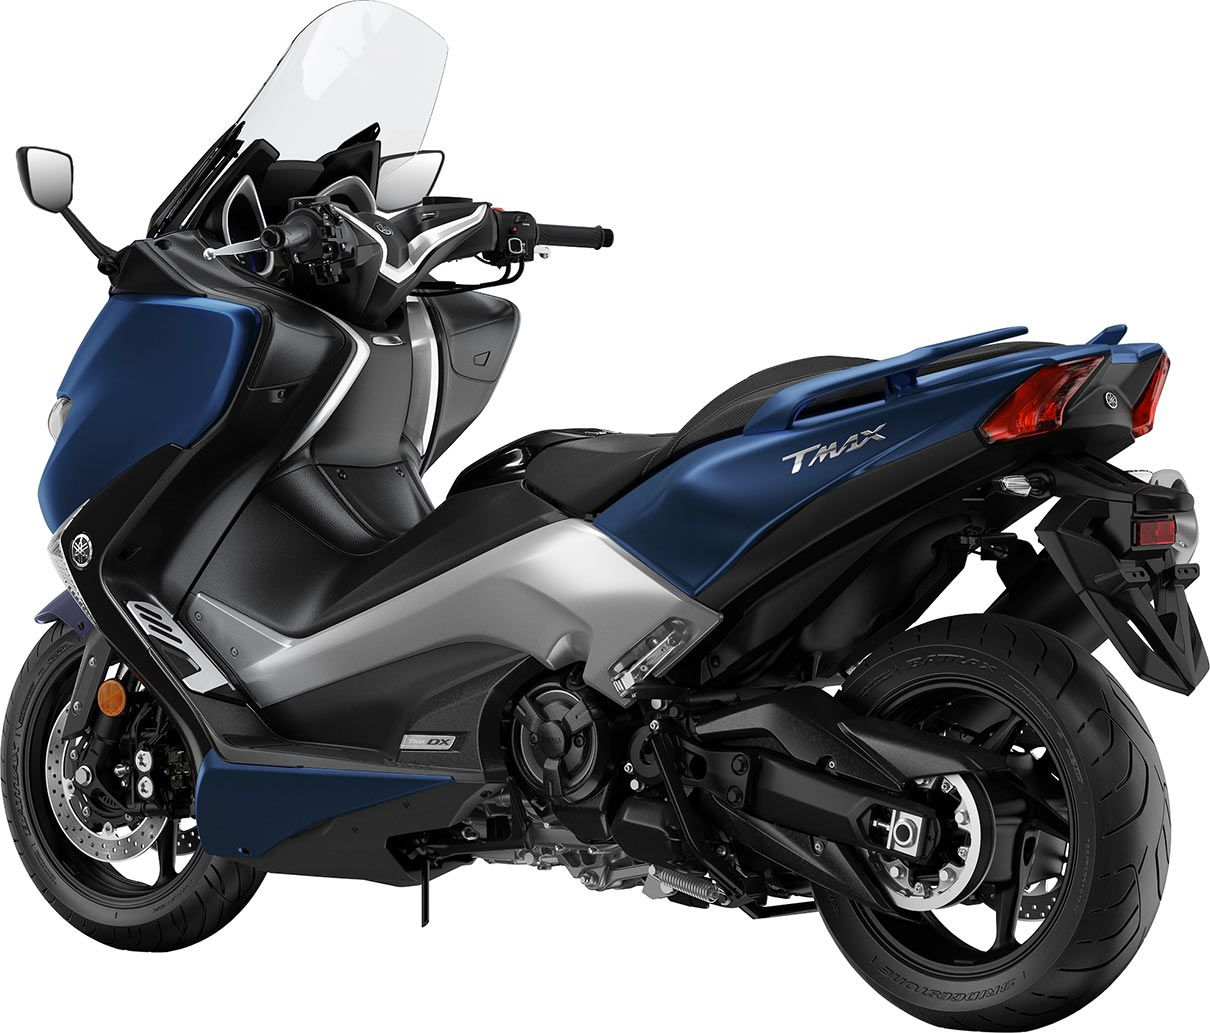 yamaha tmax 2017 3 versions tr s high tech scooters 150cc scooter and wheels. Black Bedroom Furniture Sets. Home Design Ideas